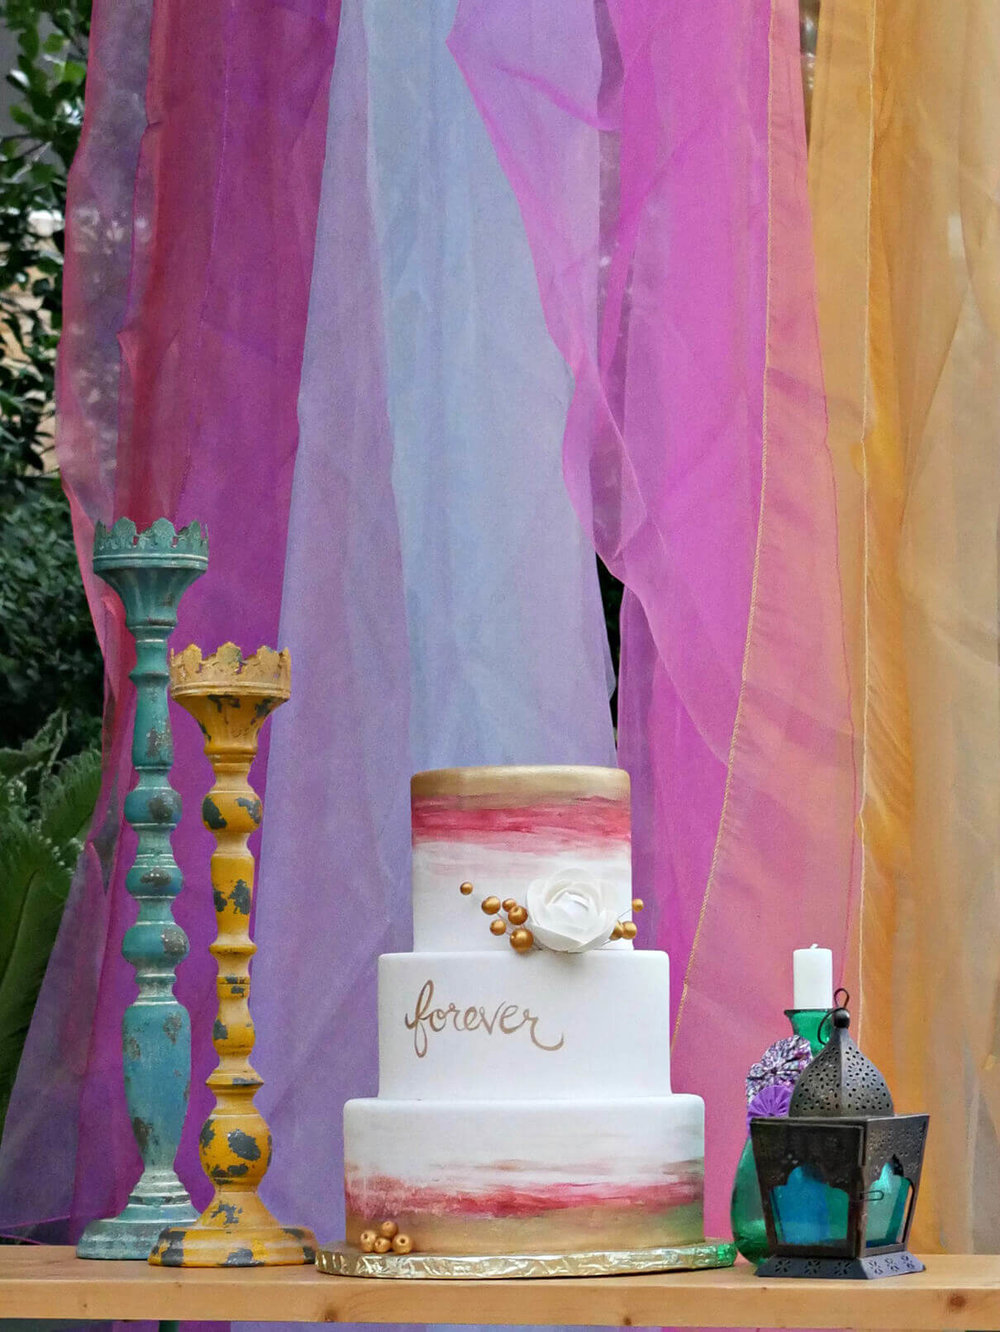 Watercolor cake created by Michelle's Patisserie and styled by Mint Event Design in Austin Texas www.minteventdesign.com #caketable #weddingcake #weddingcakes #bohochic #watercolorcake